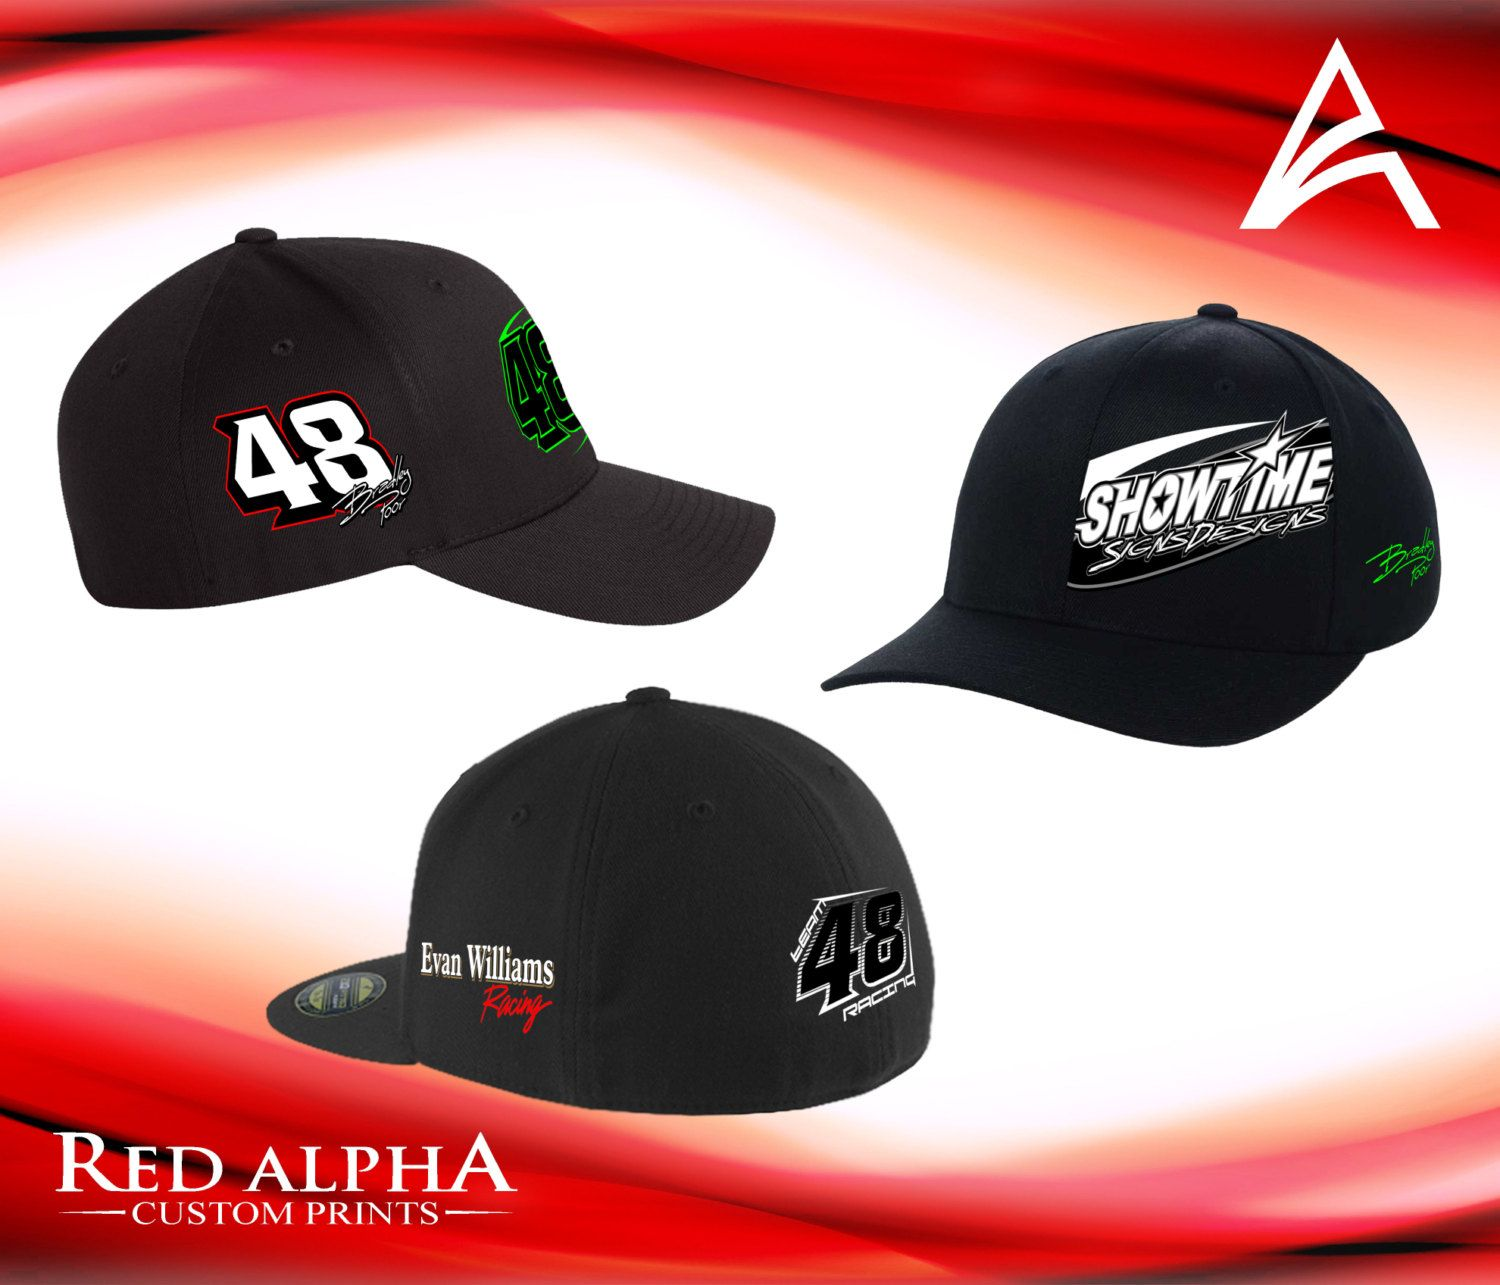 Racing Caps-Dirt Track Dirt Car Sport Mod Racing gear Racing Apparel  Embroidered Caps Racing Hats Race car Racing sponsor Racing Swag by  RedAlphaTees on ... 51eb1f4771c